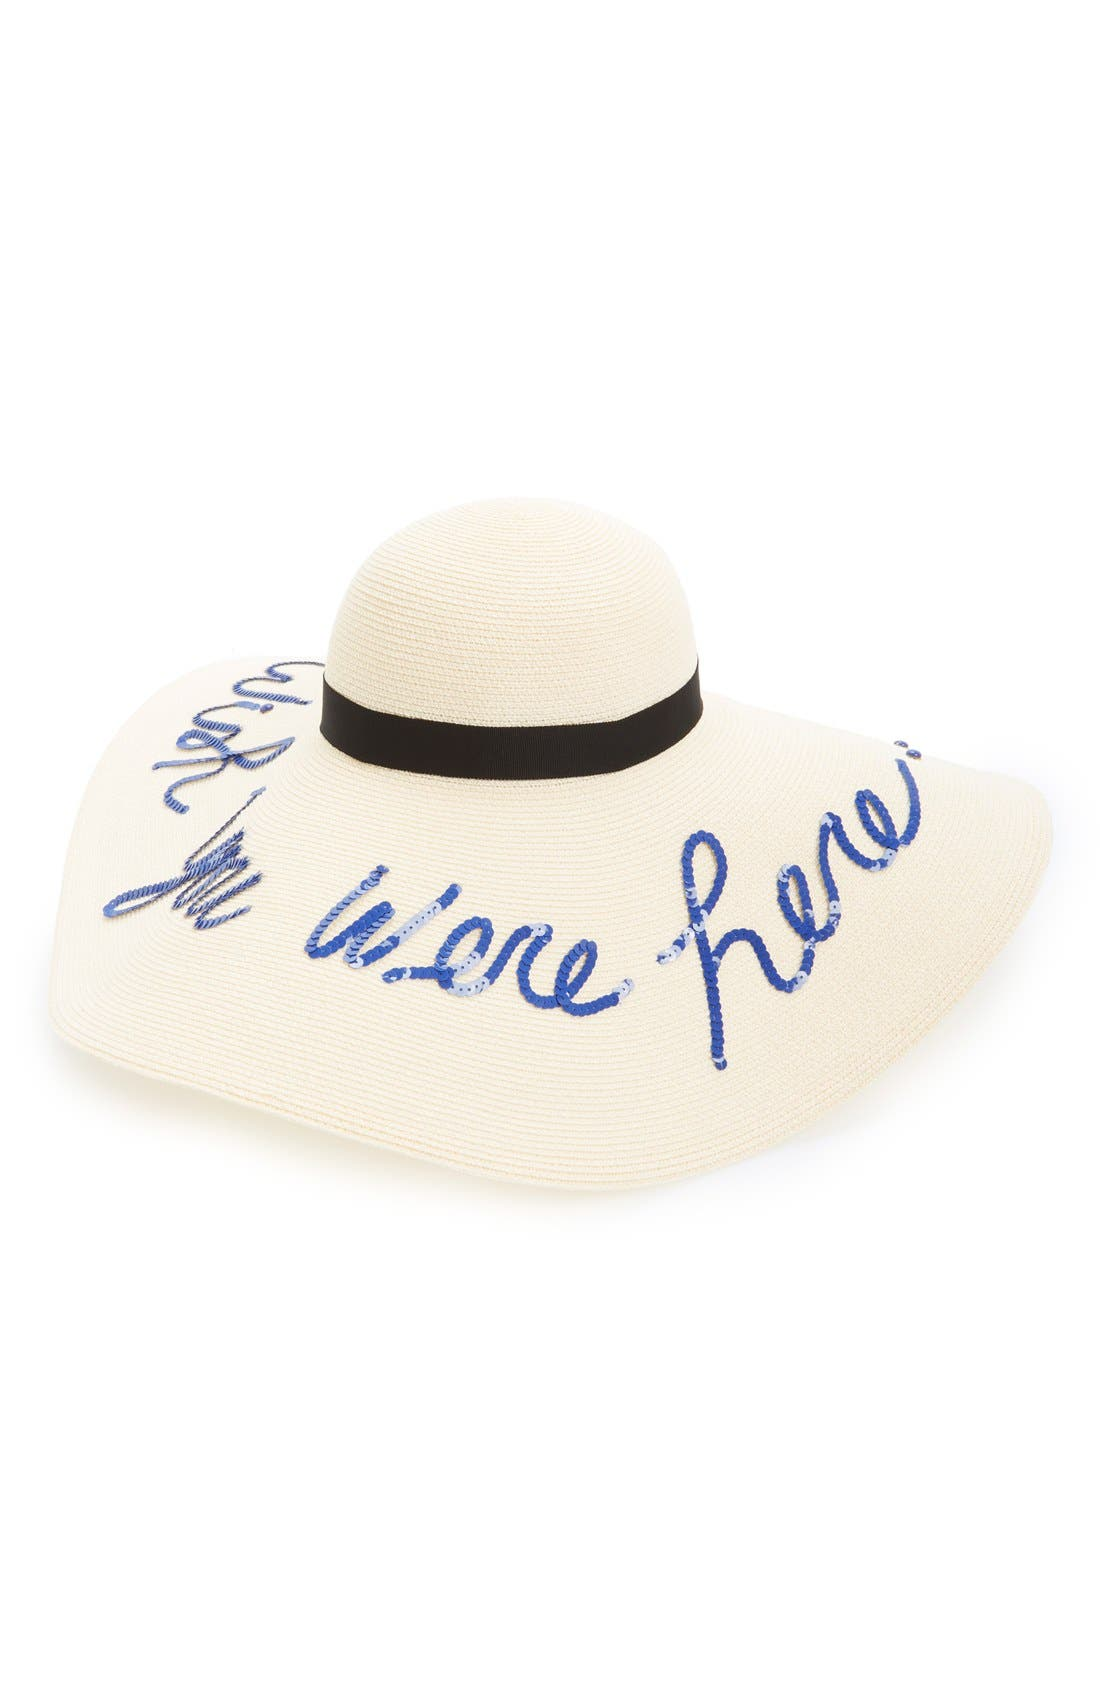 'Sunny - Wish You Were Here' Straw Sun Hat,                             Main thumbnail 1, color,                             250